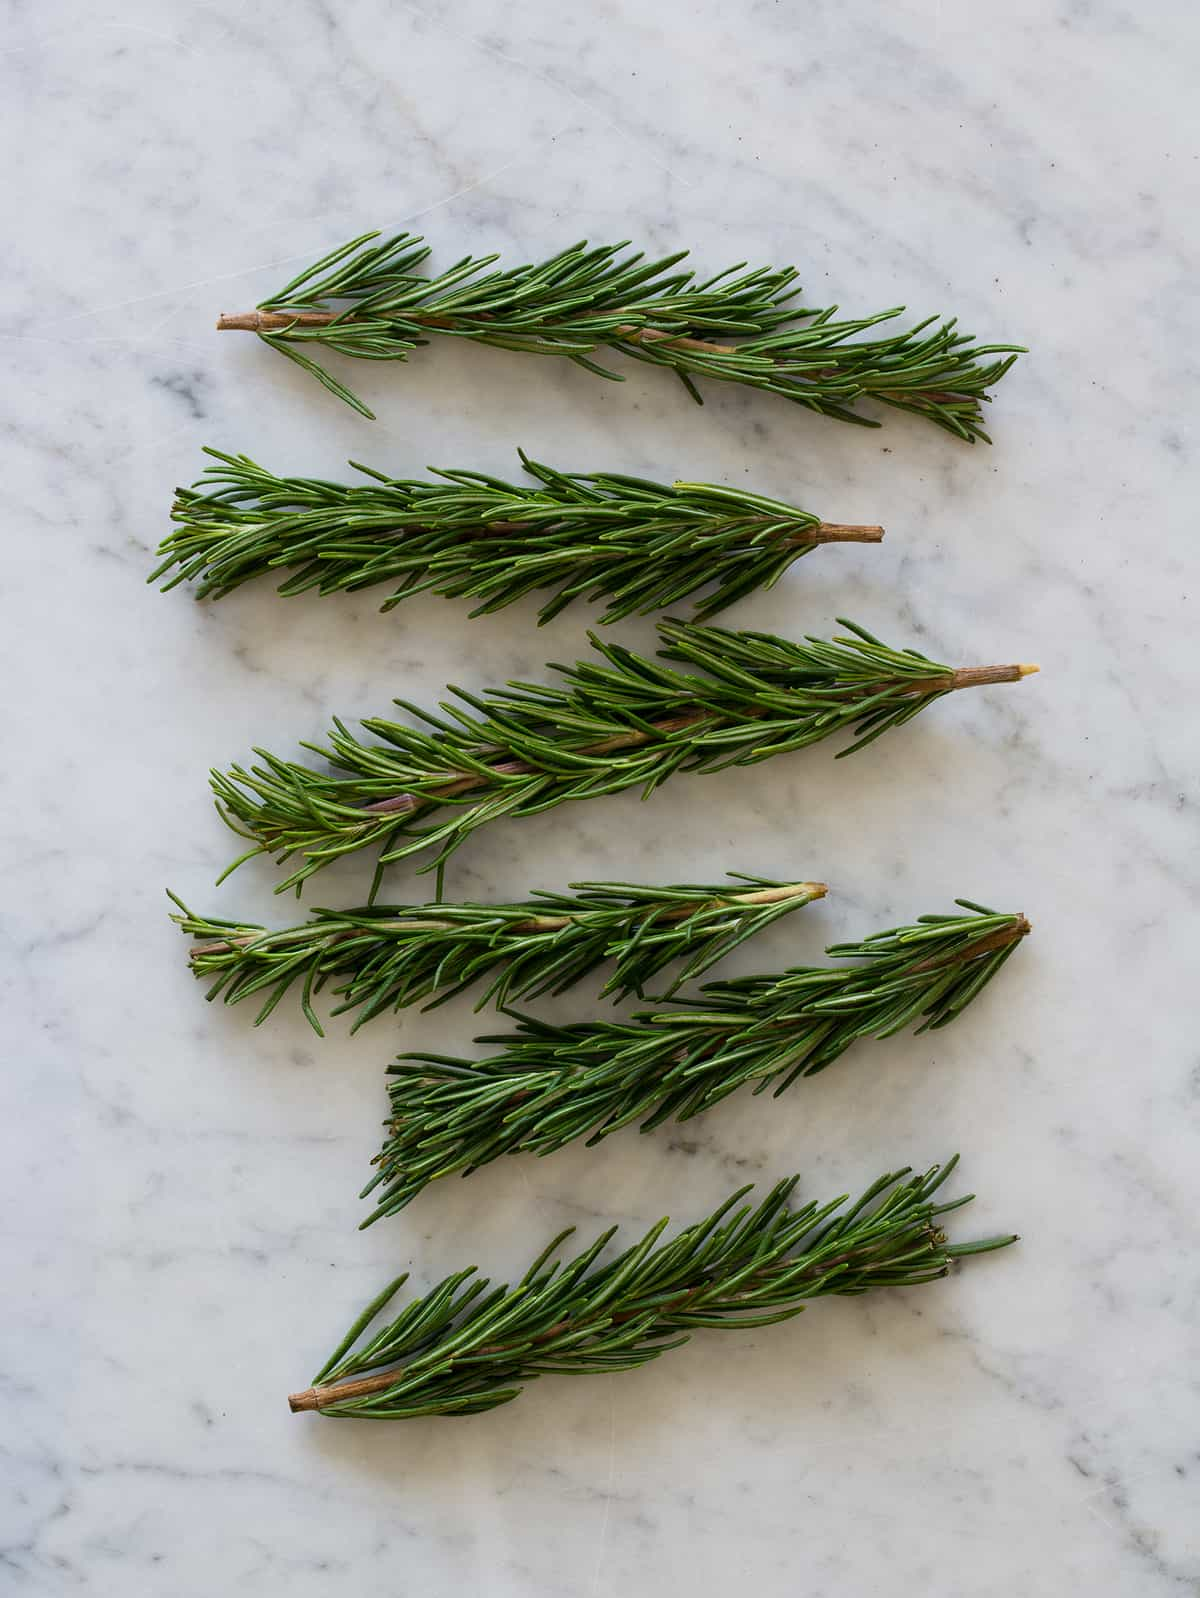 dried rosemary sprigs - DriverLayer Search Engine